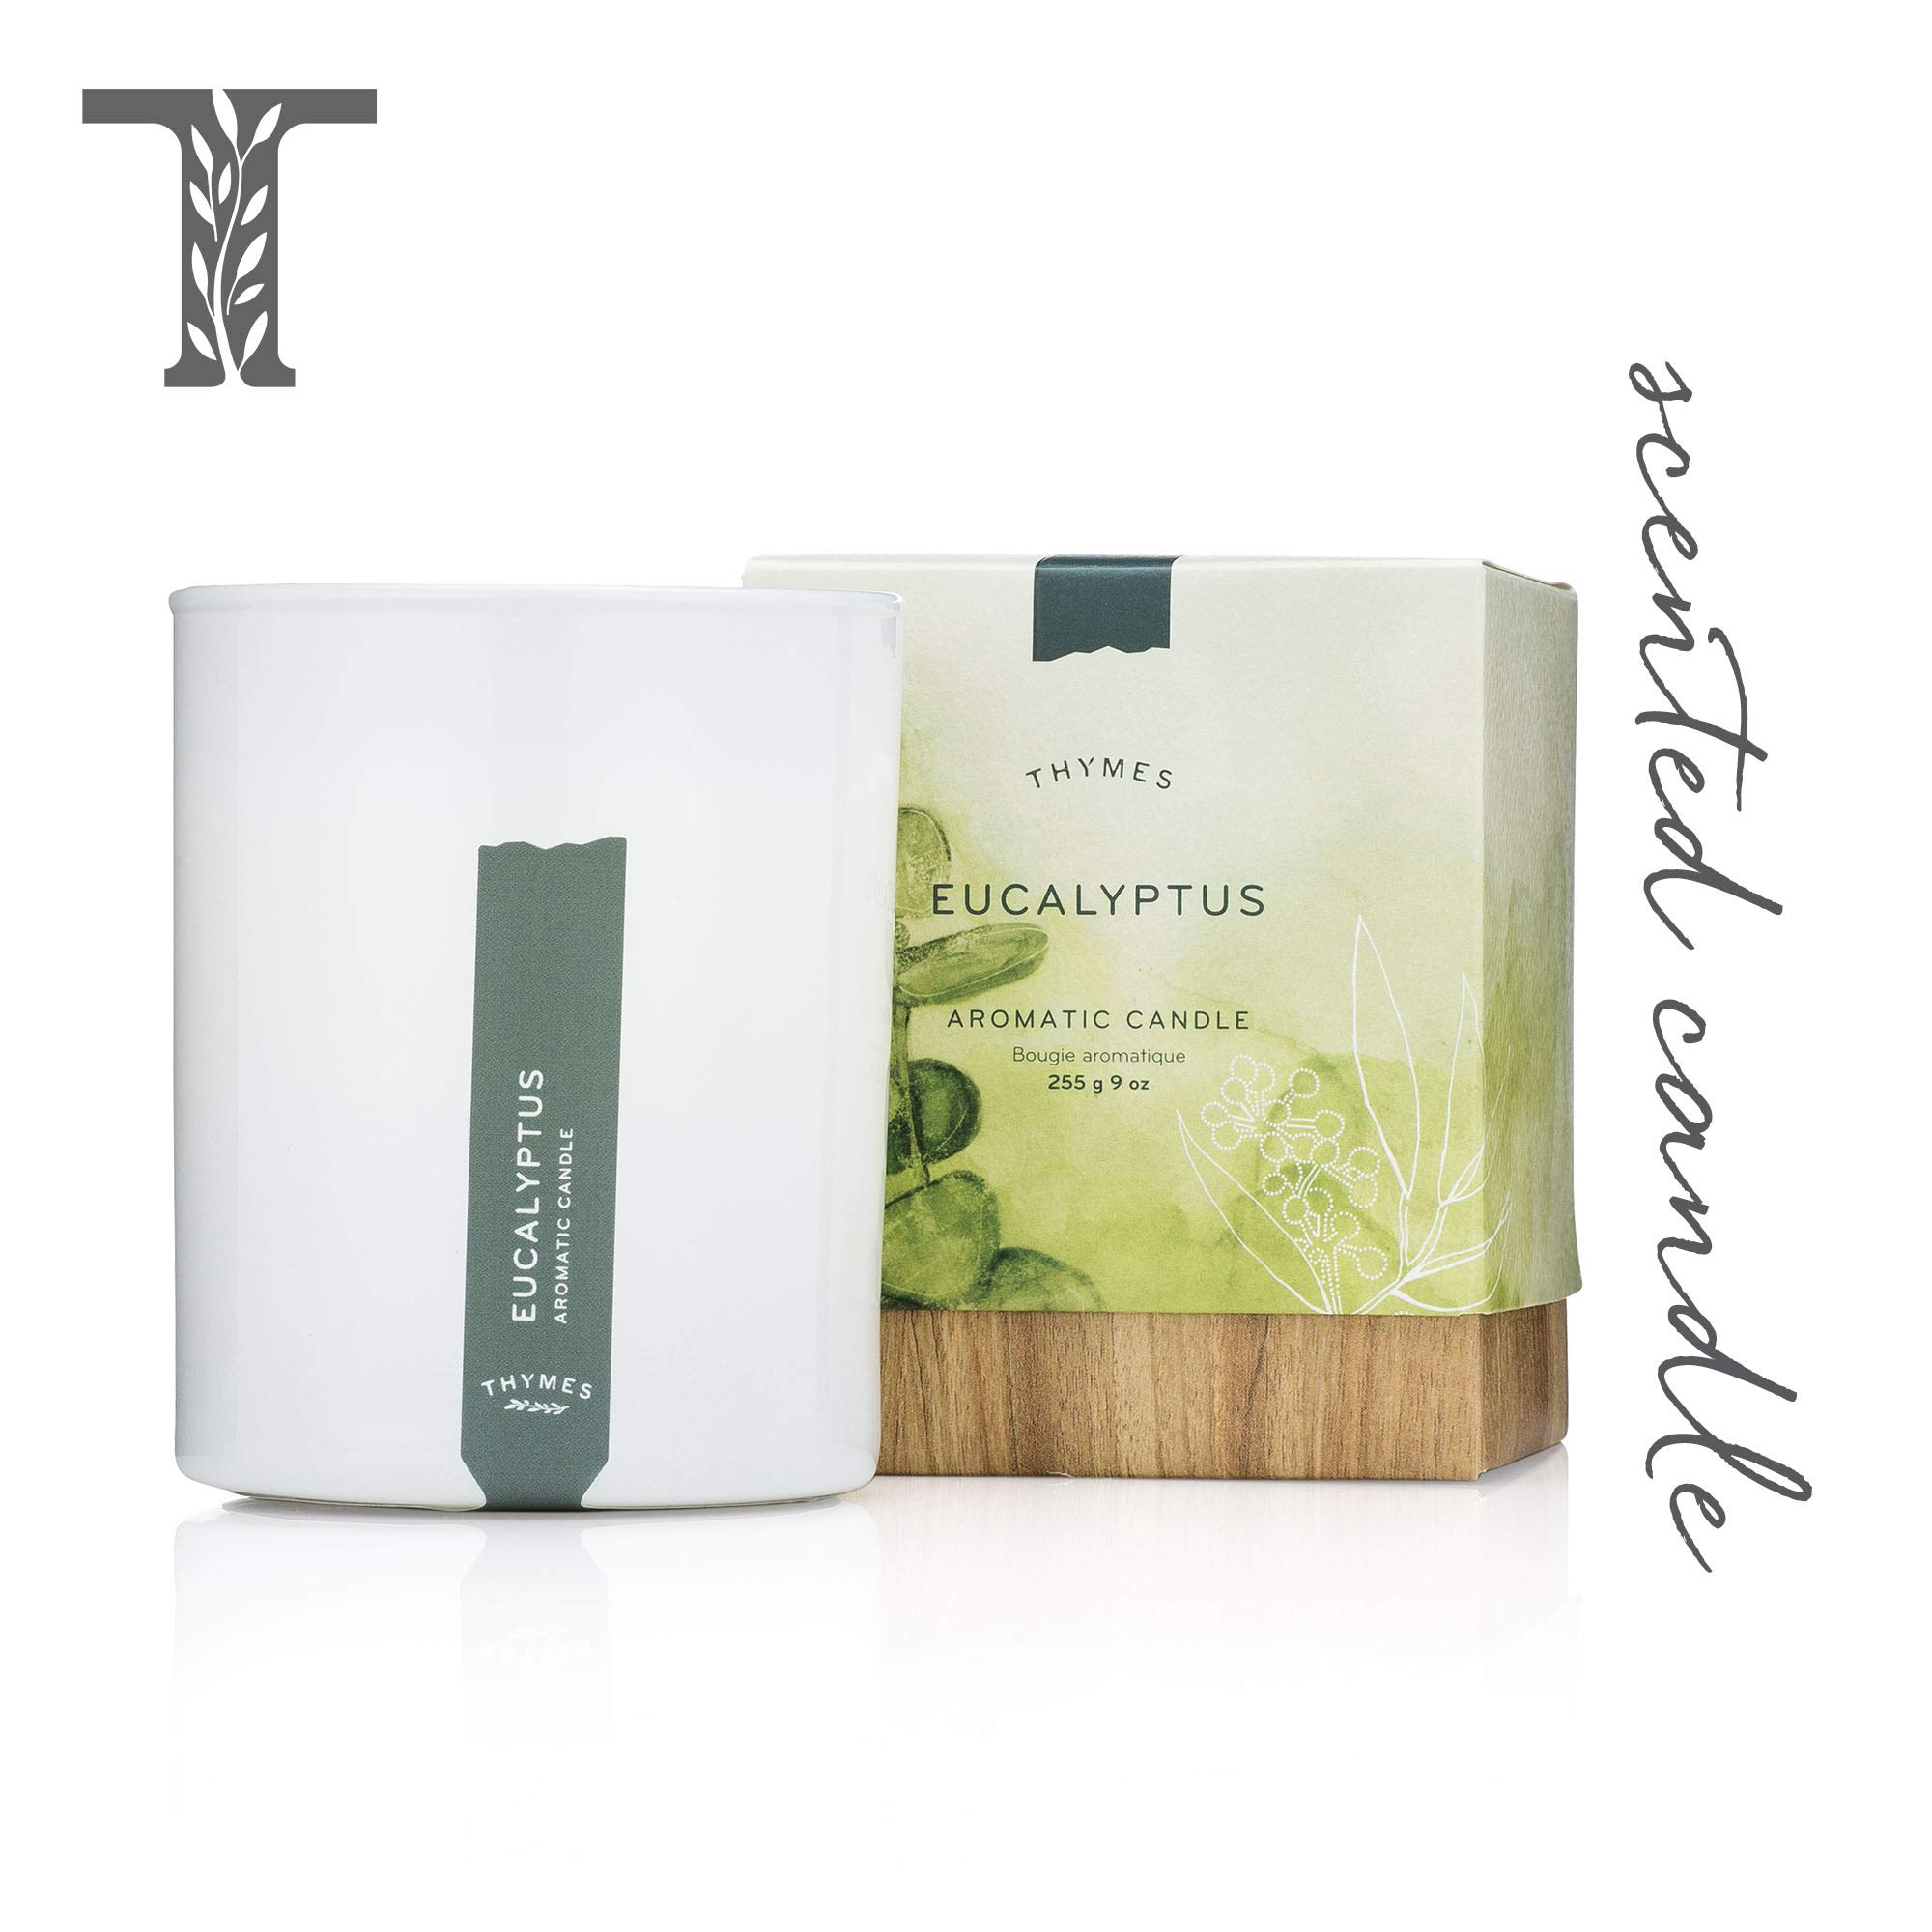 Thymes - Eucalyptus Aromatic Scented Candle - Long Lasting Scent with Gift Box - 9 oz by Thymes